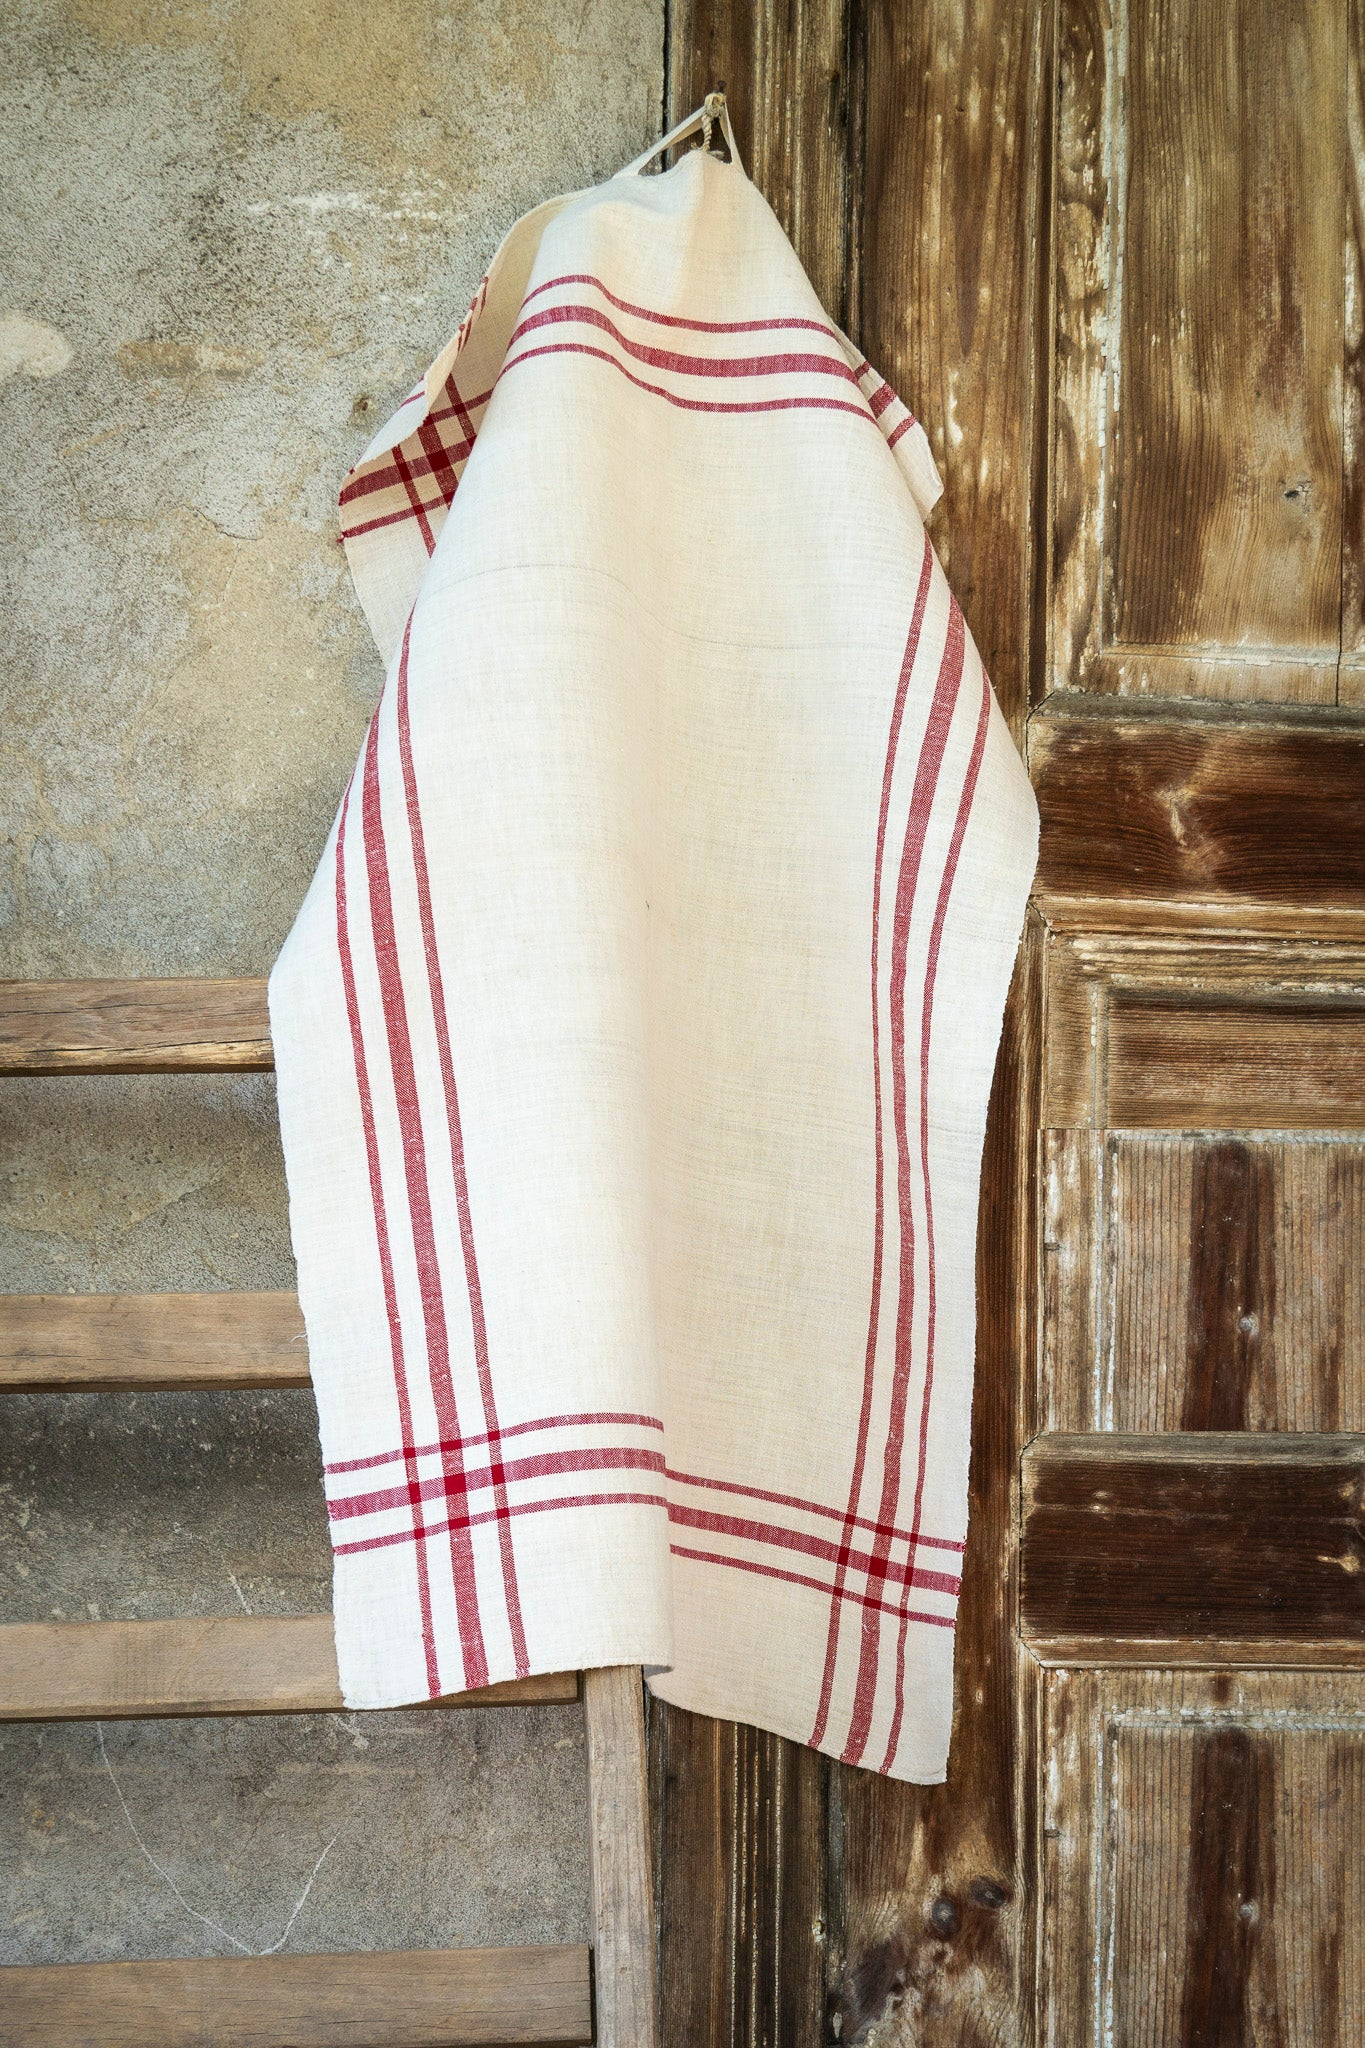 Towel: Handwoven antique Hungarian hemp - T31